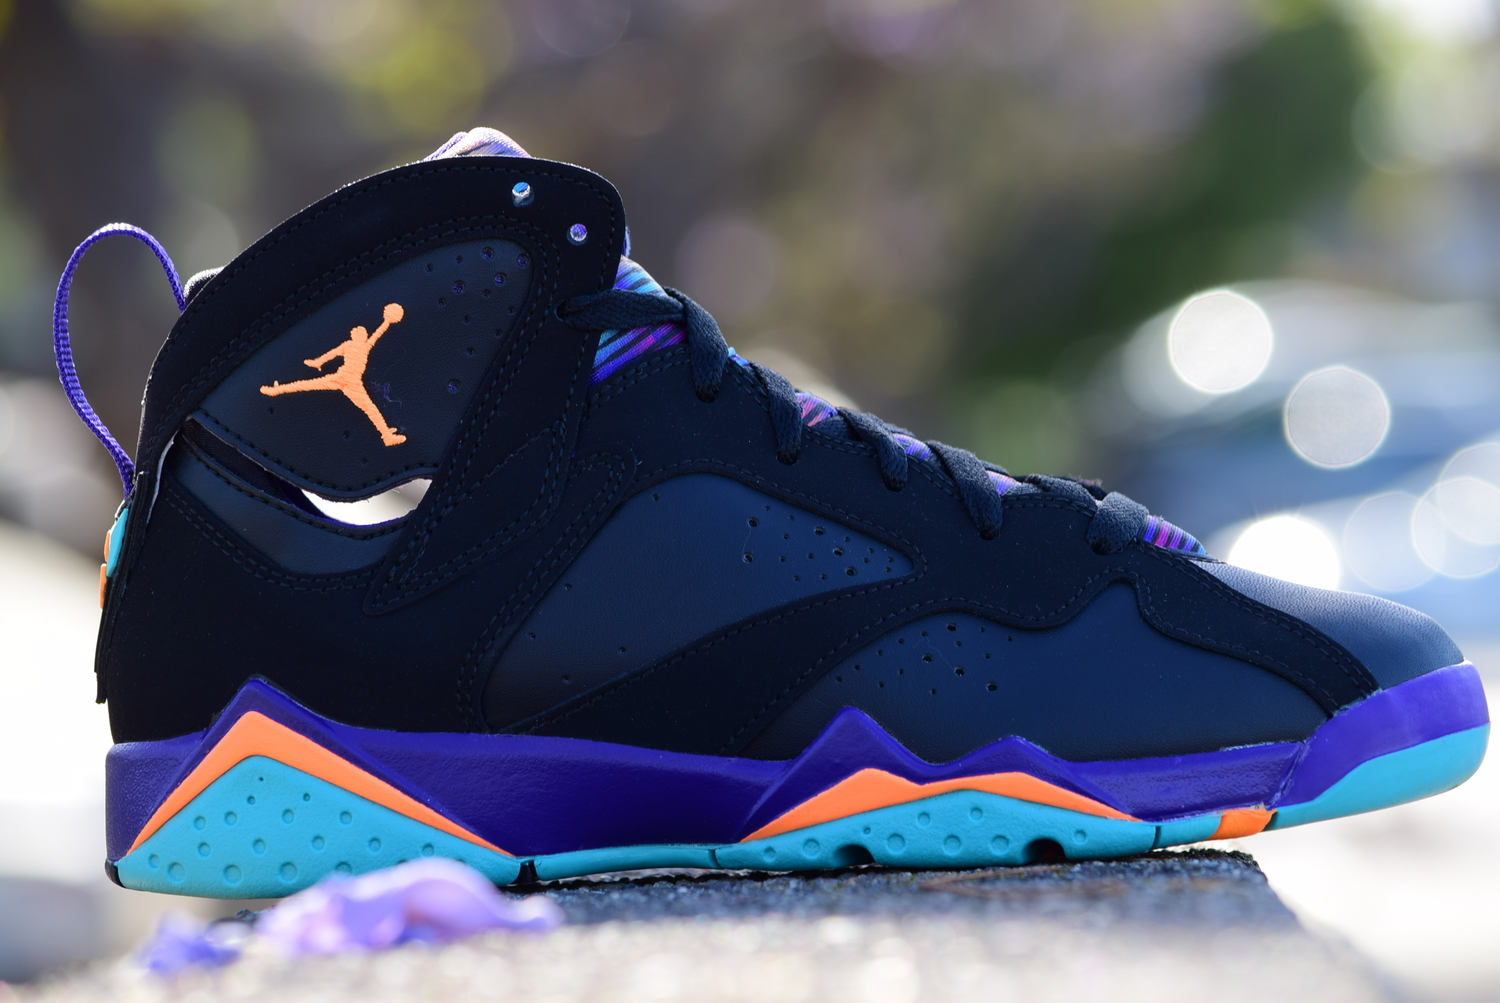 new images of detailed pictures new images of Air Jordan 7 Retro